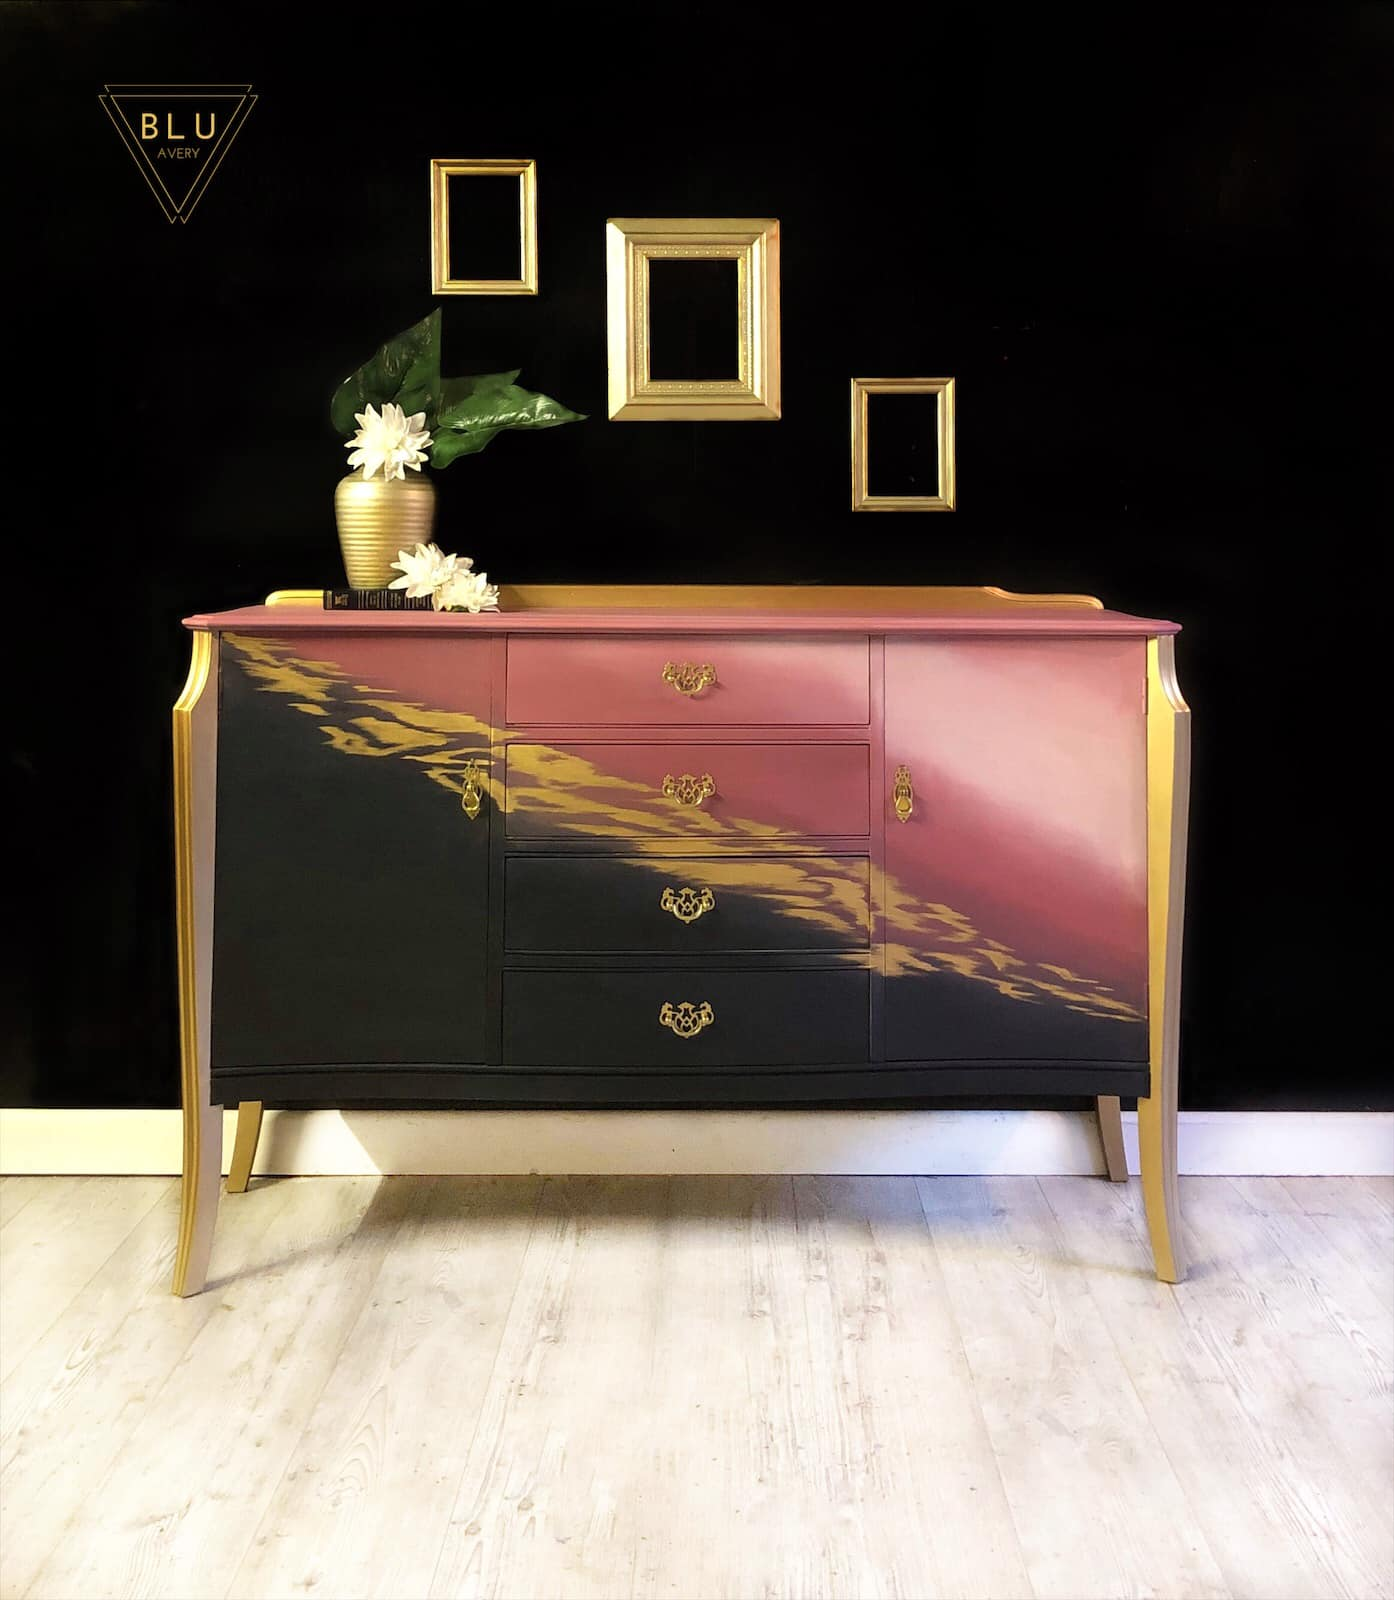 The House of Upcycling: Blu Avery Designs Gold Feature Sideboard